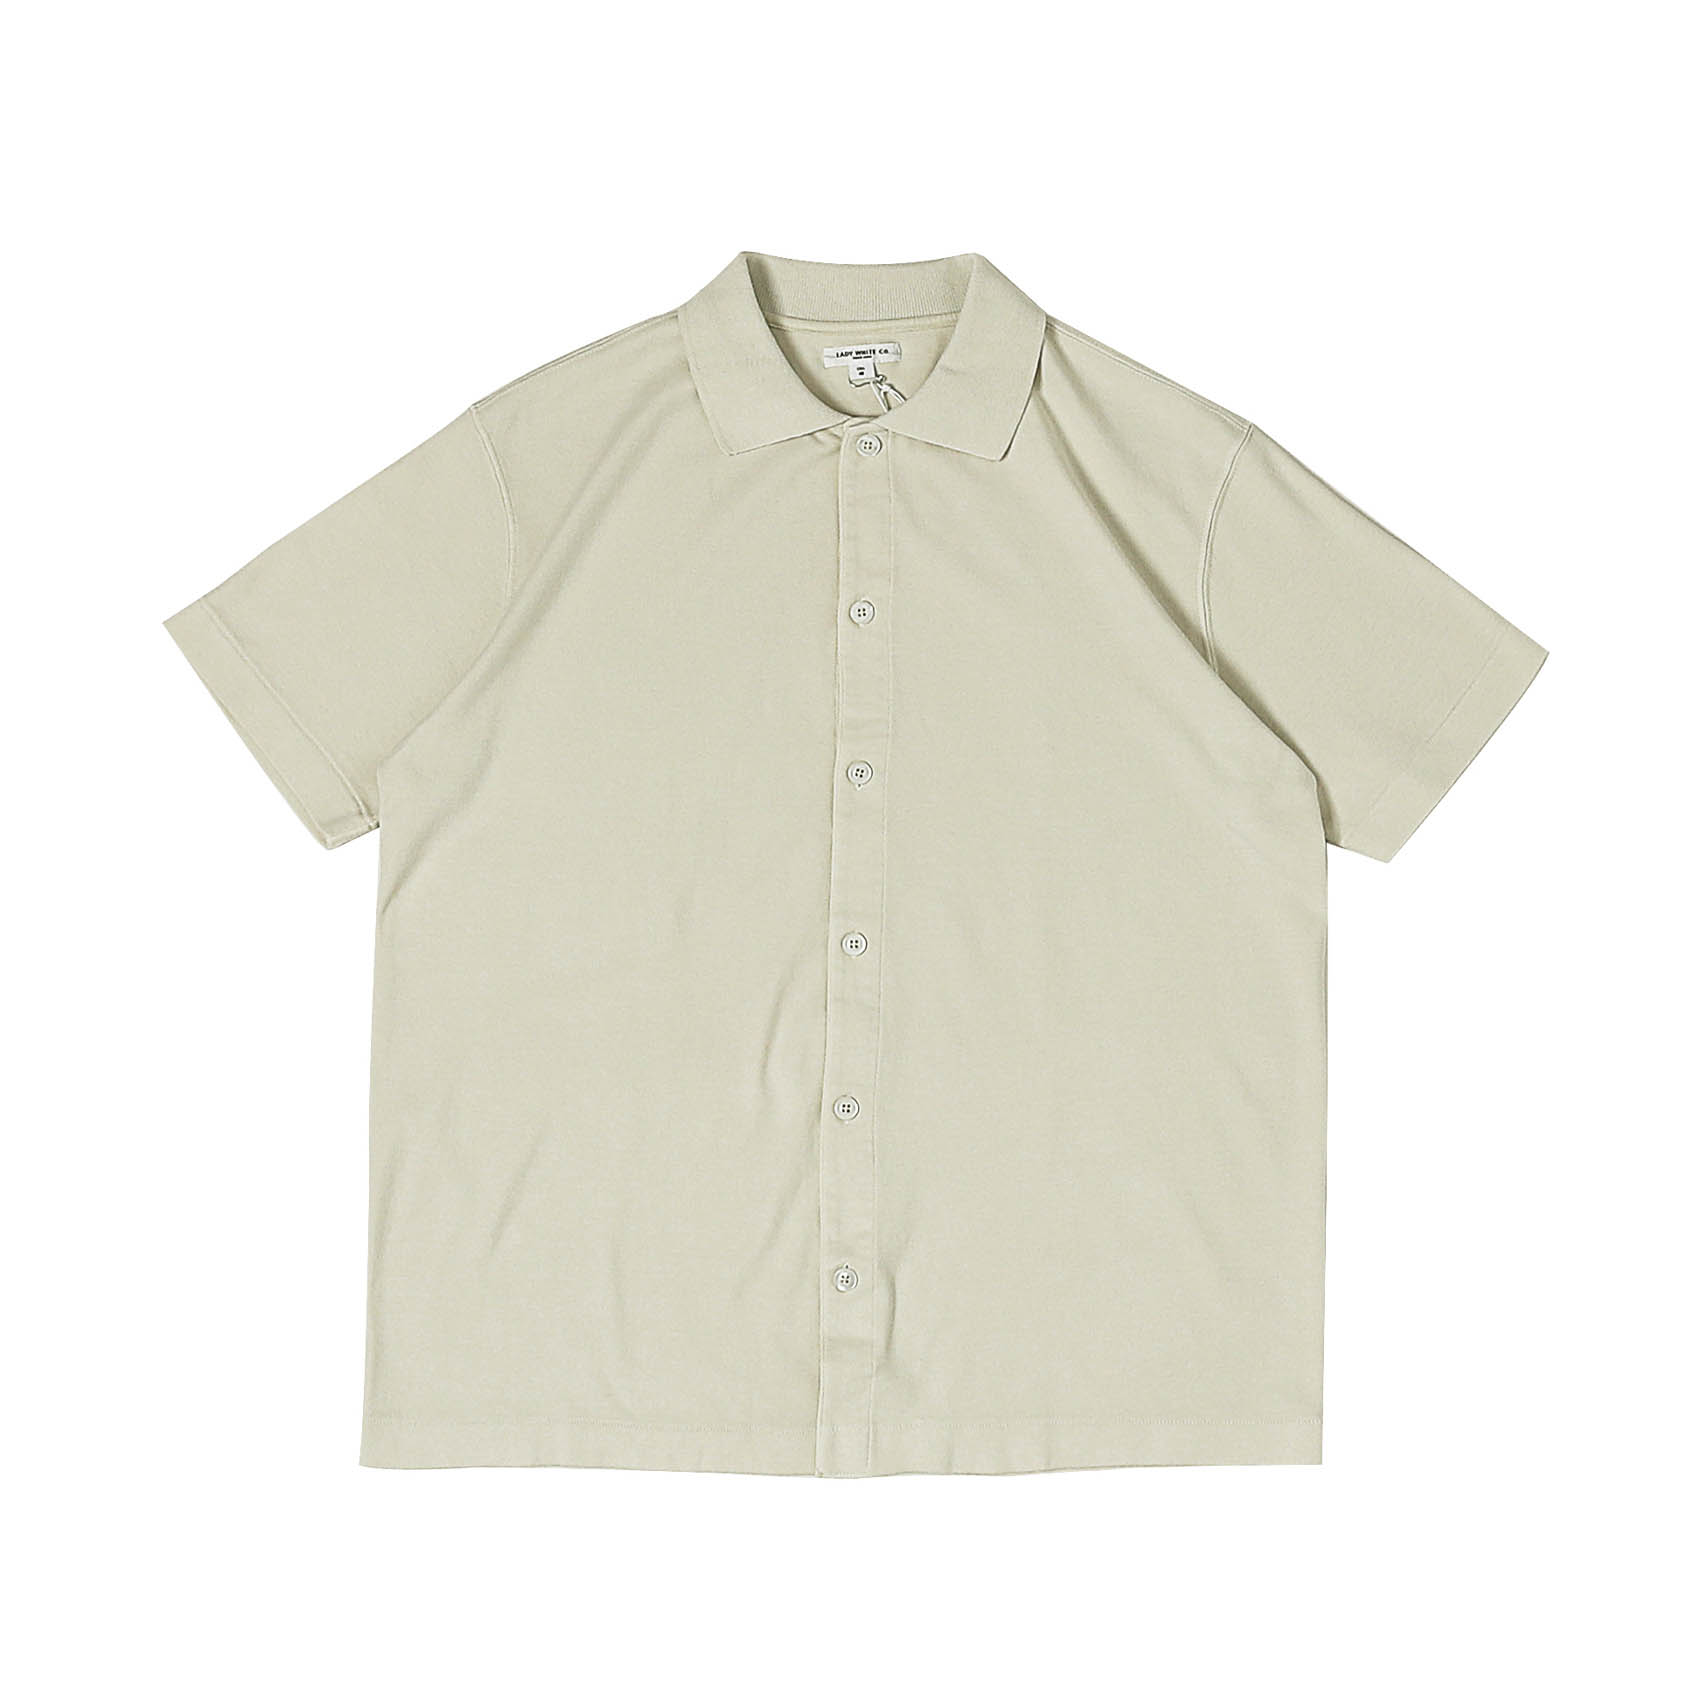 S/S PLACKET POLO - BONE